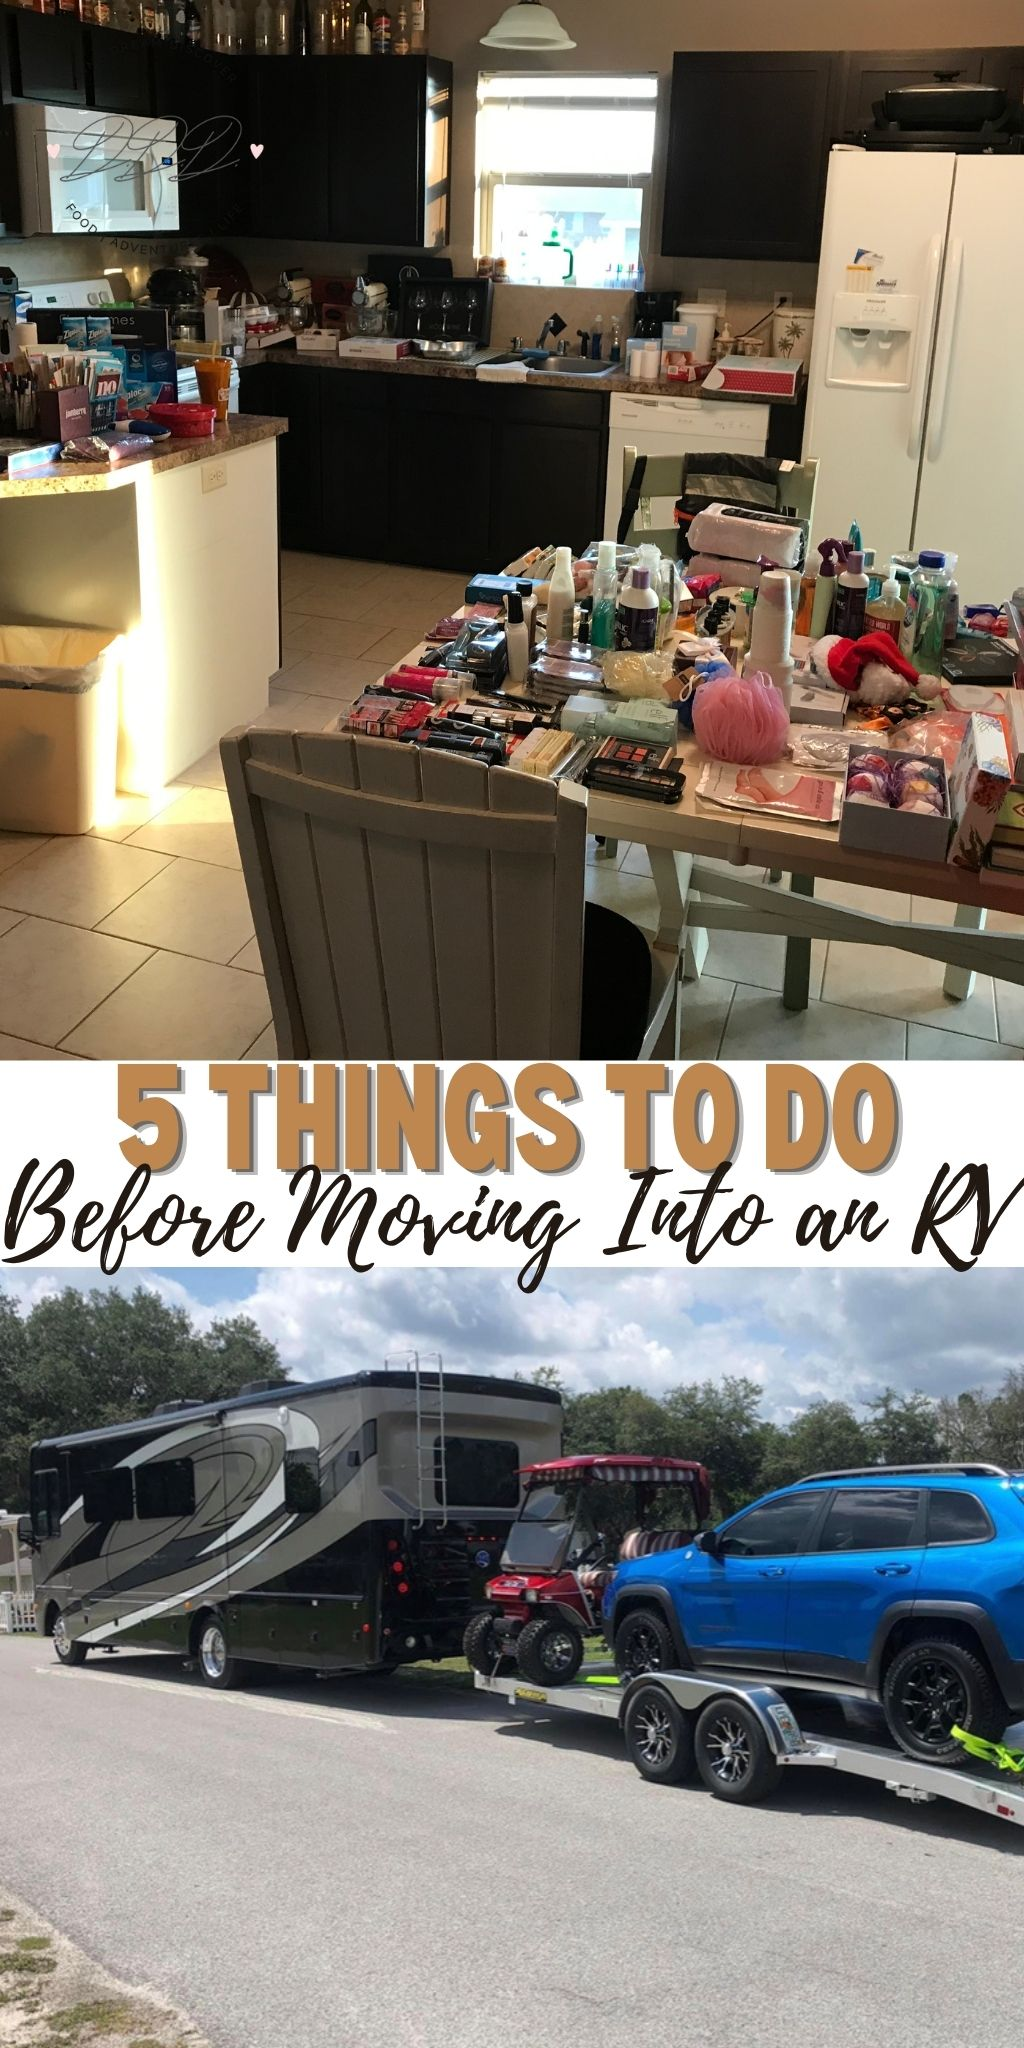 5 things to do before moving into an RV